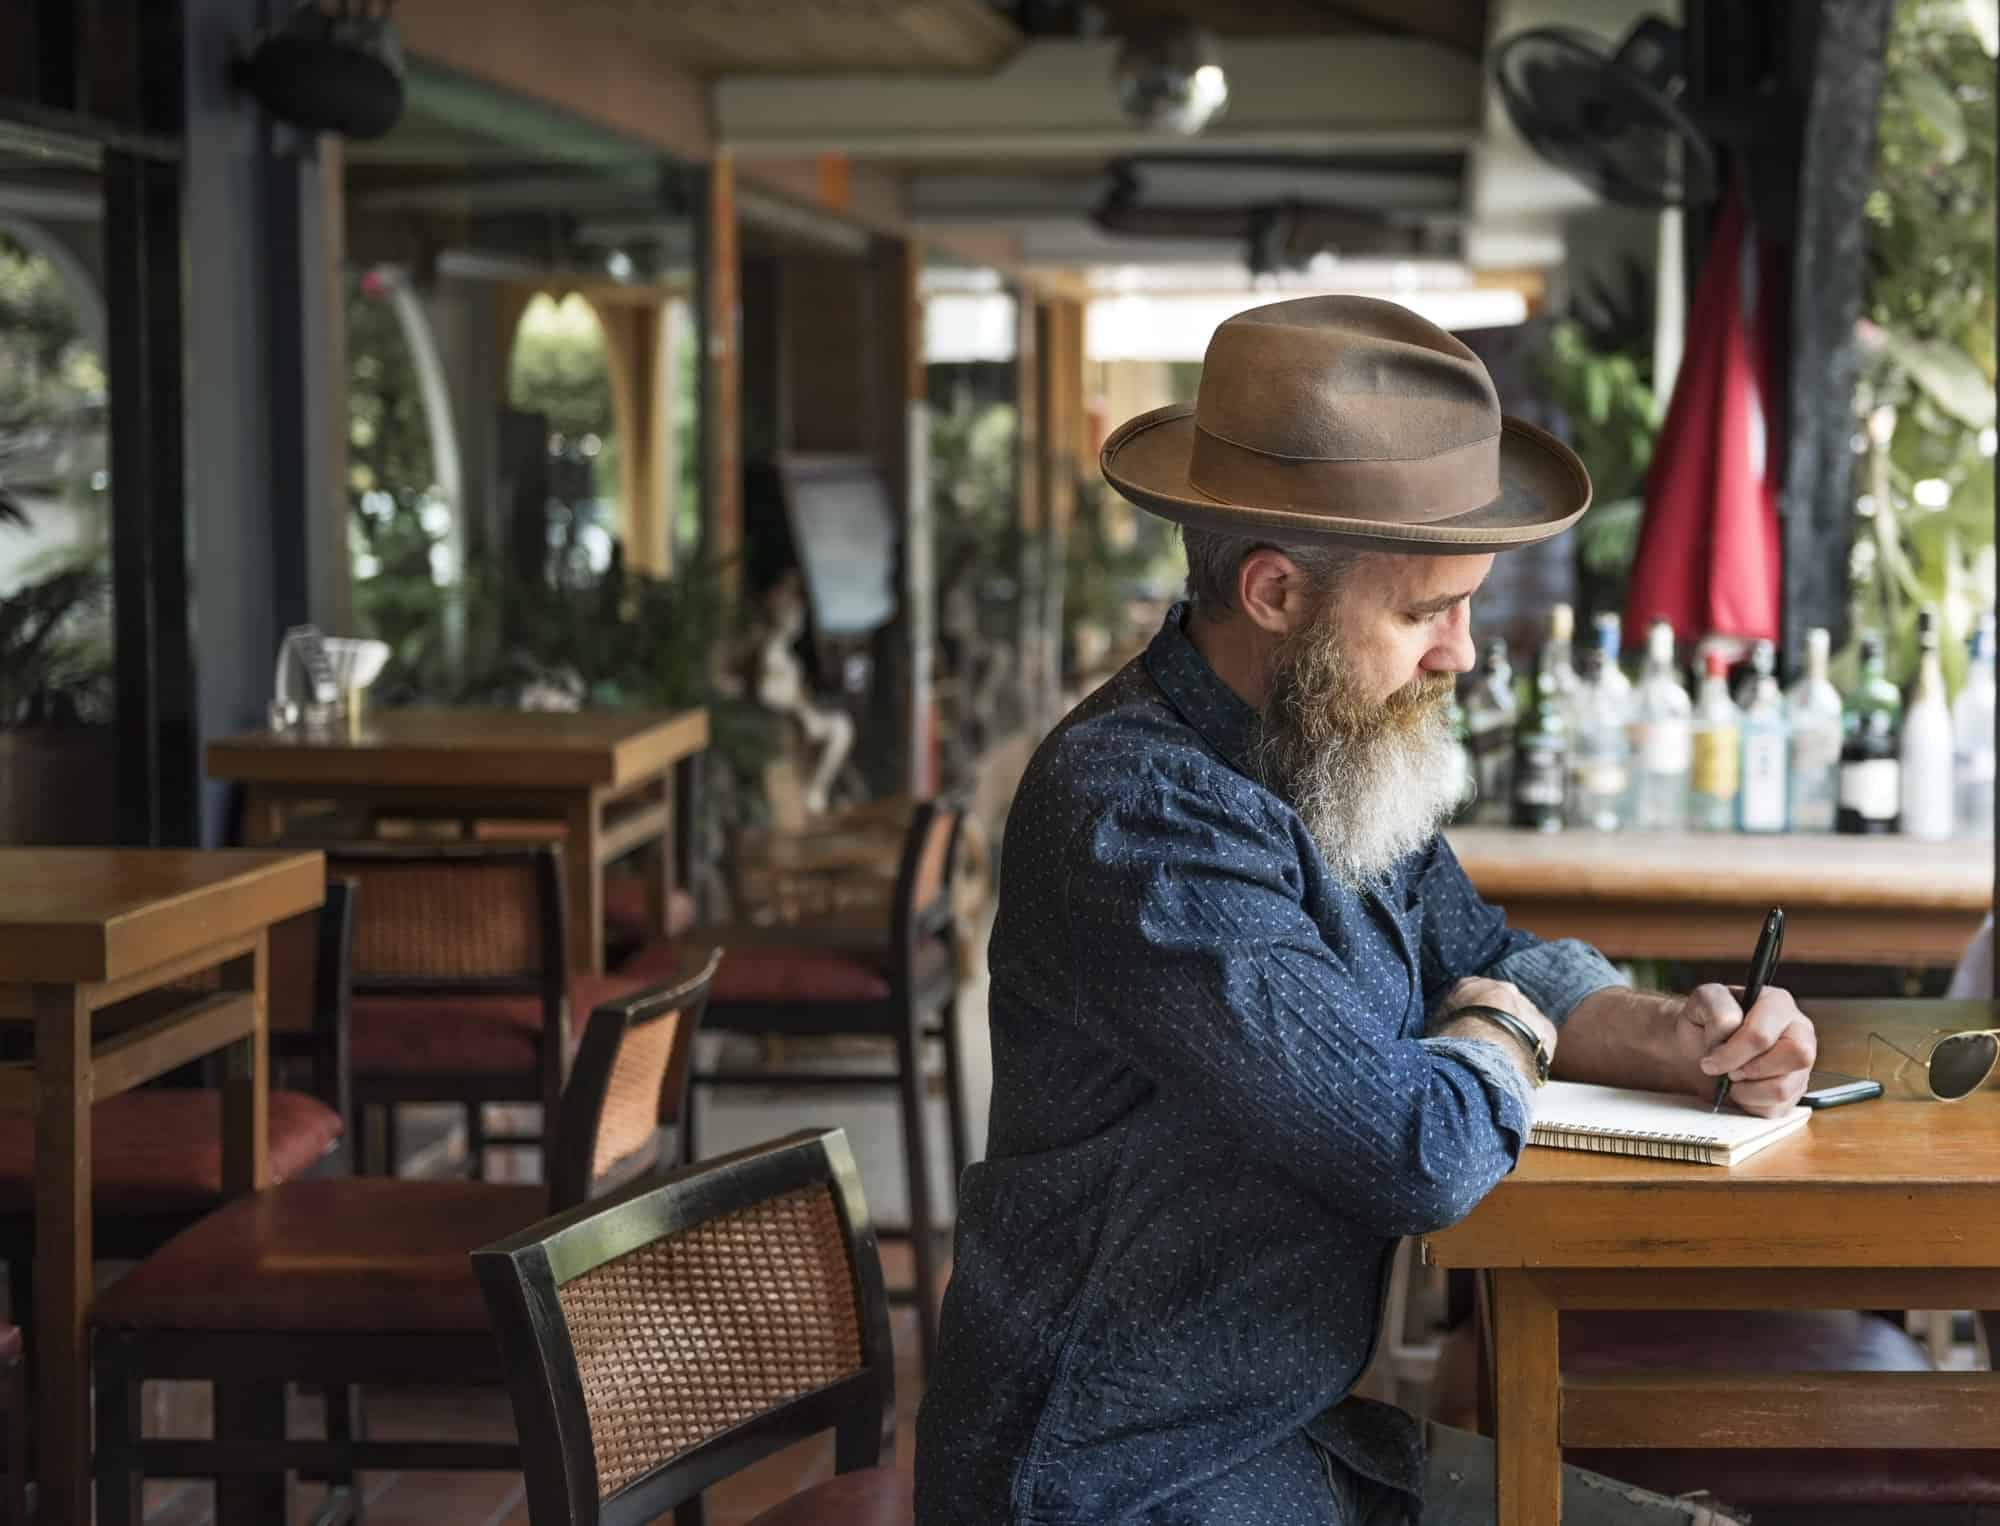 Writer with beard in cafe working